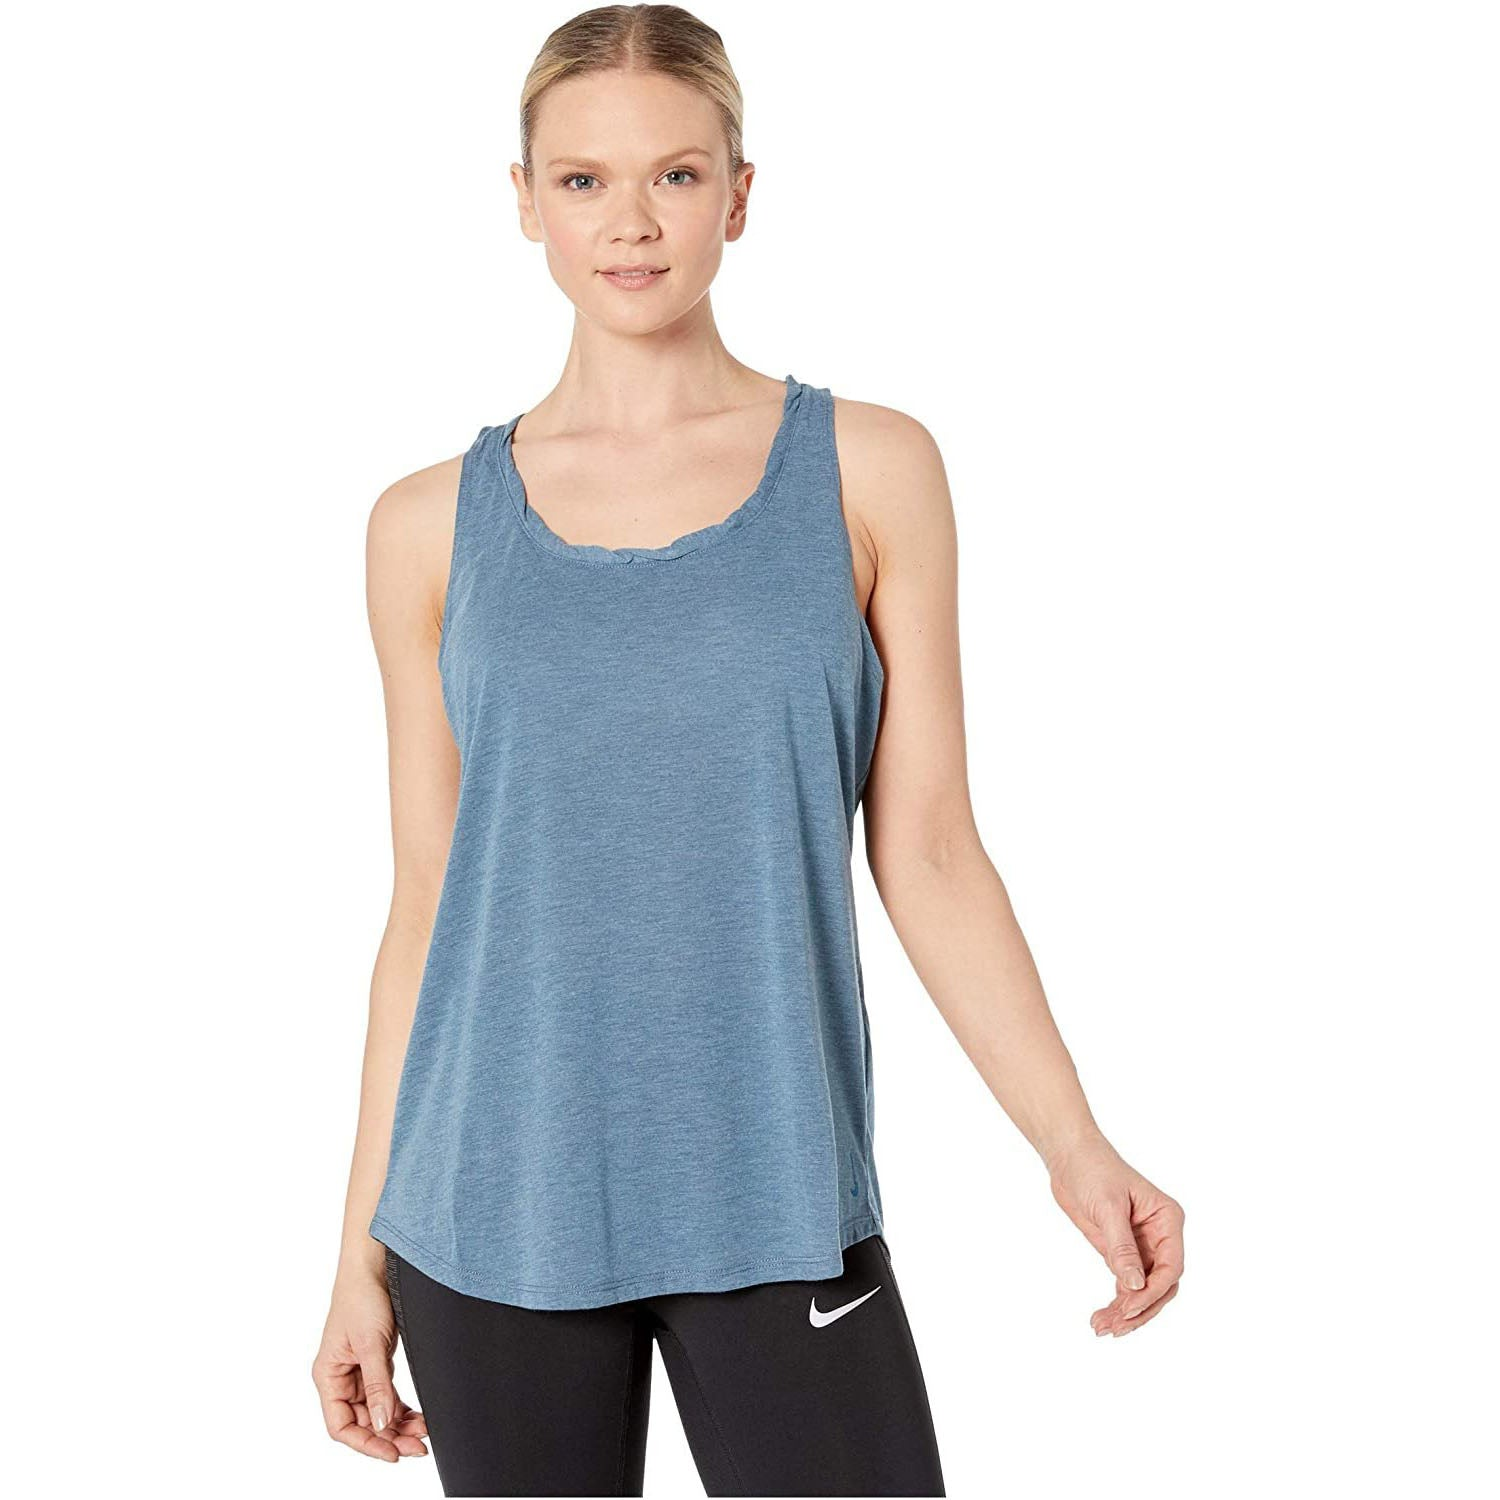 Nike Womens Women's Yoga Twist Training Tank